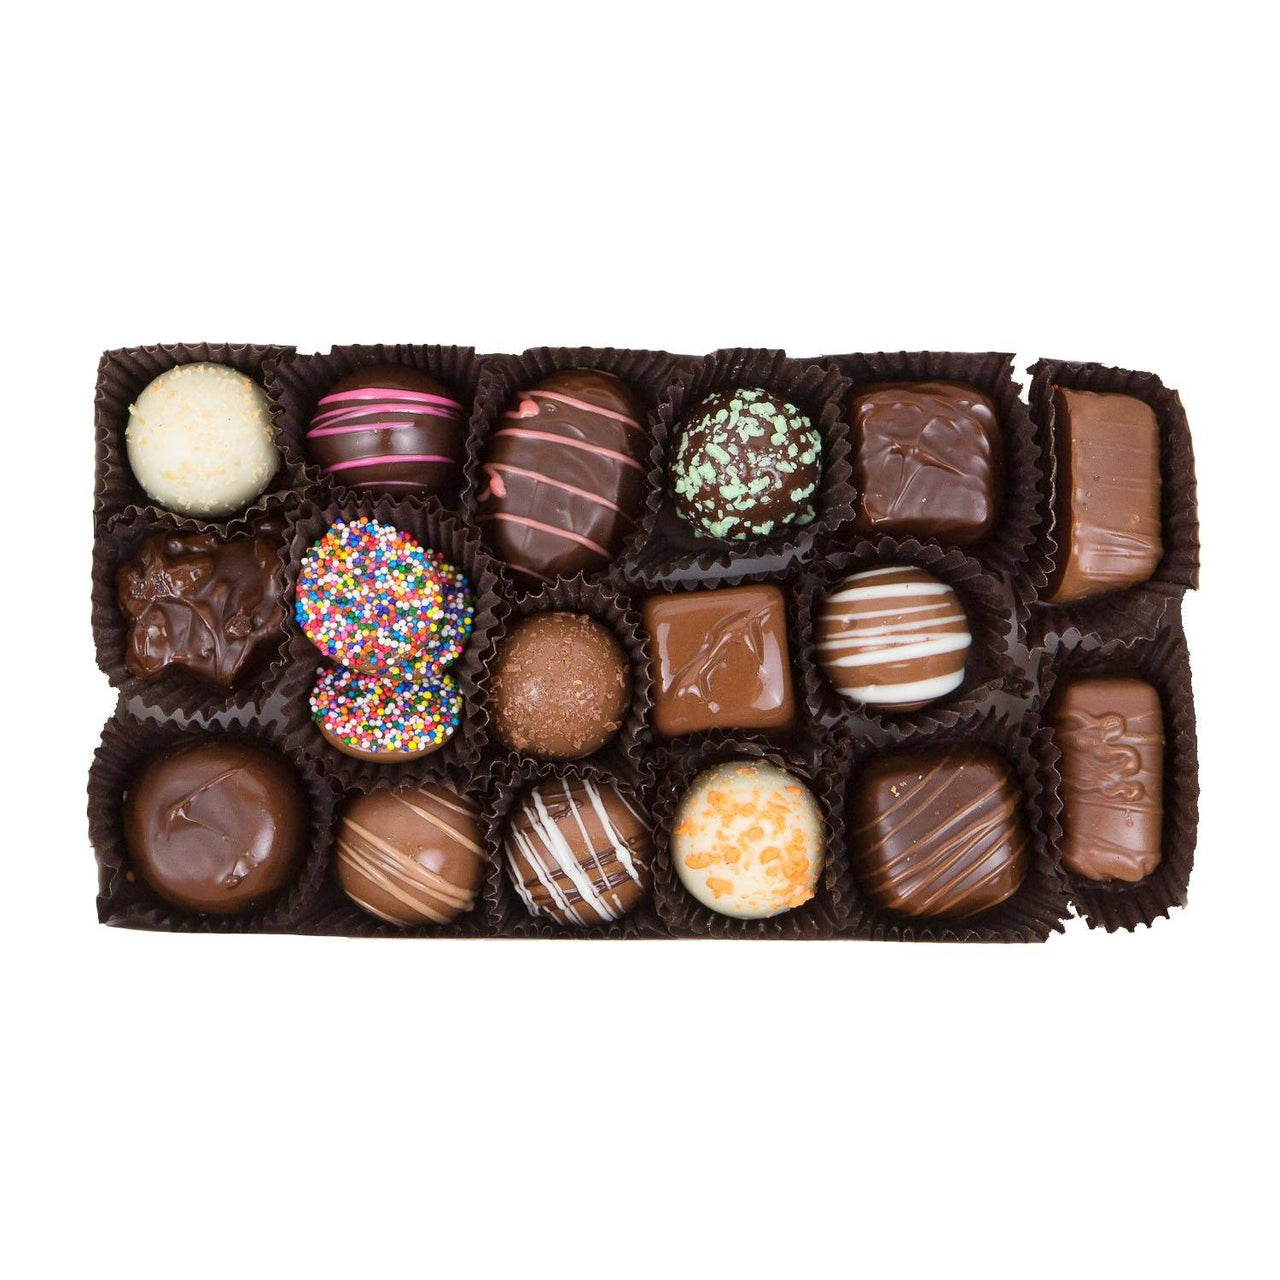 Gifts for Girls - Assorted Chocolate Gift Box - Jackie's Chocolate (1487123120163)